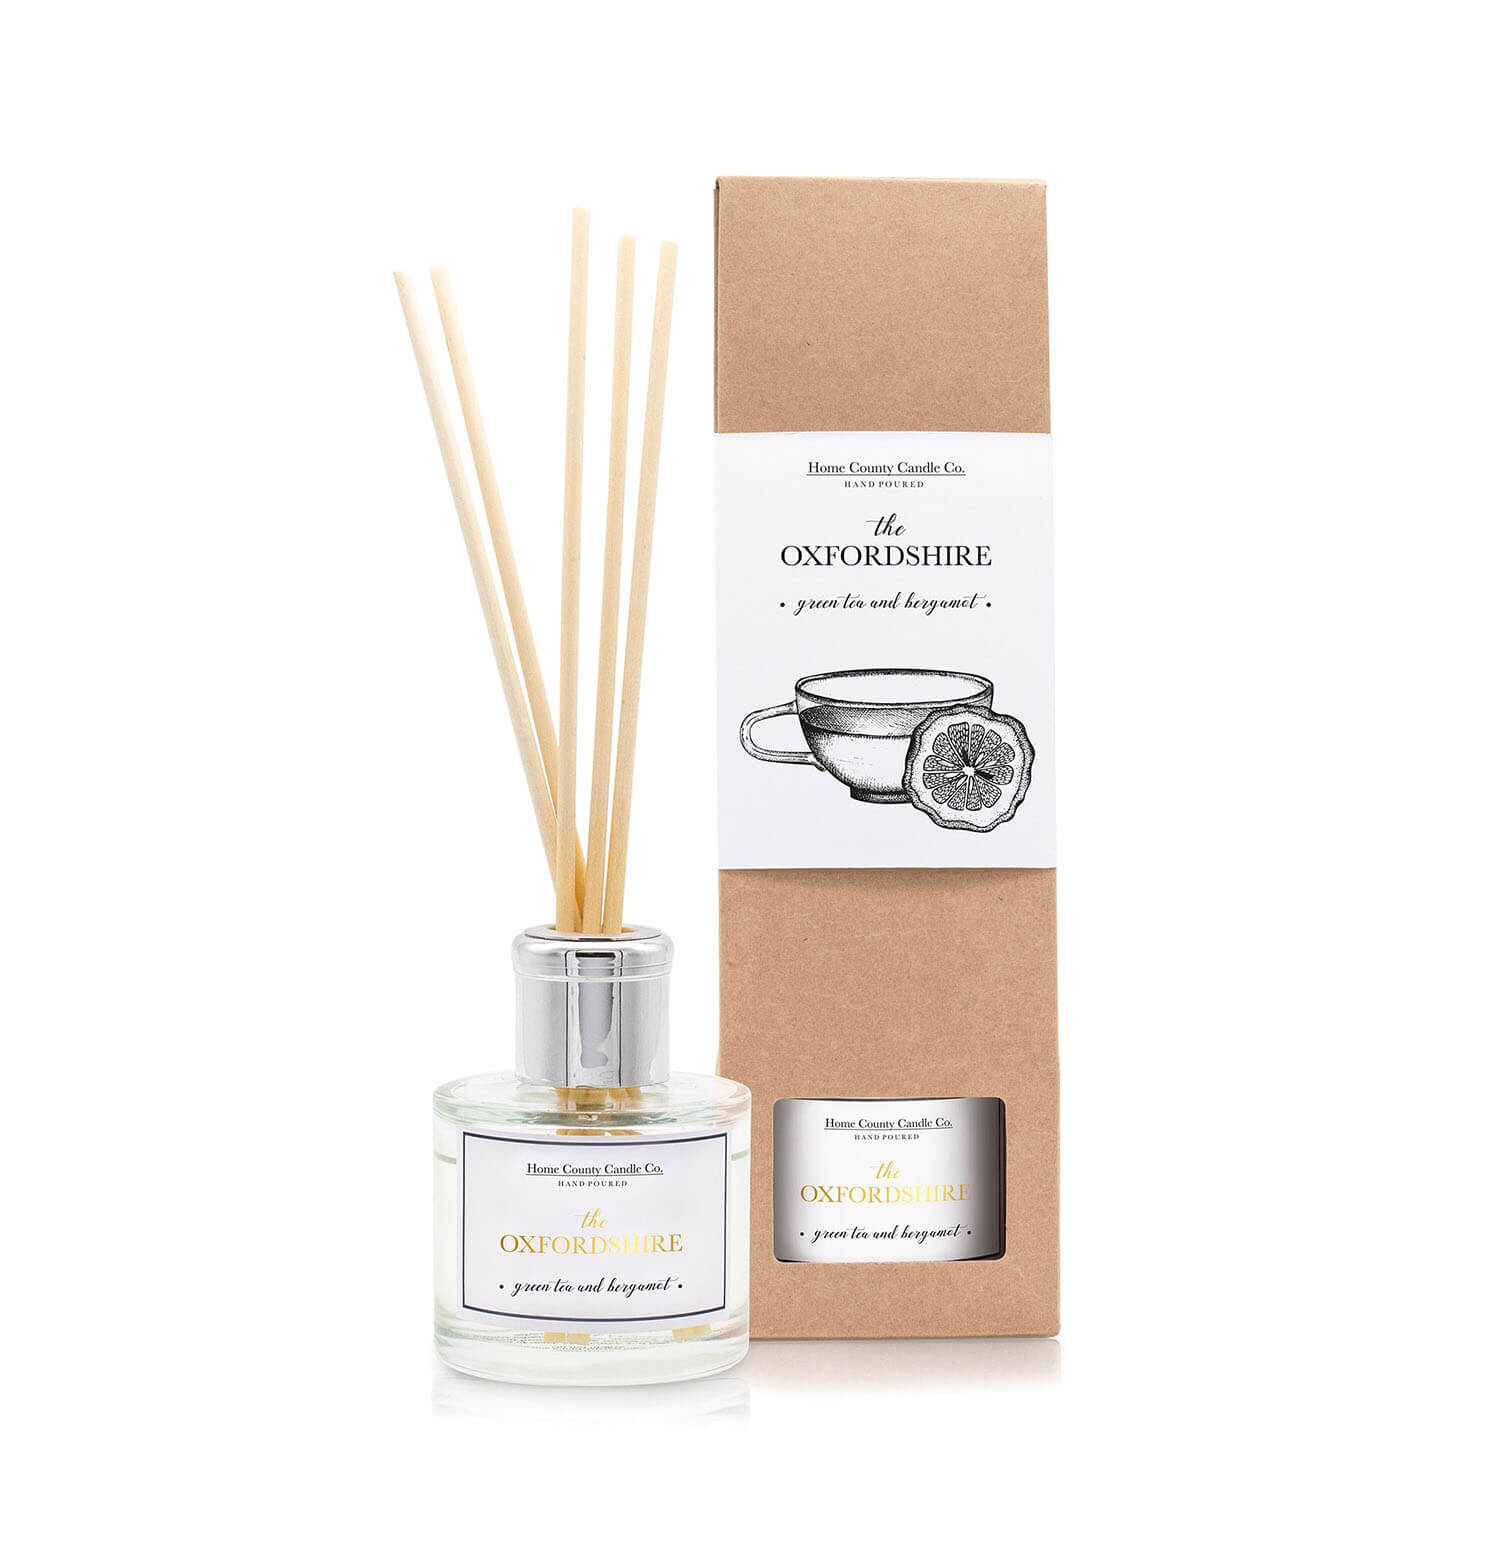 inspired by… - Our Oxfordshire products are scented with Green Tea & Bergamot, inspired by tea with friends in the 'City of Dreaming Spires.'Working on the Bucks/Ox border I often find myself popping into Oxford after work to meet up with friends for a chat, and we always admire the beautiful views. Oxford is so rich in history but is also young, fresh, vibrant and clean - something we wanted to capture with our Oxfordshire scent.We hope we achieved just that with refreshing citrus bergamot, blended mandarin and drier notes of orange rind and lemon, twisted by notes of green tea forming the top notes. Leading on to a vibrant, floral bouquet heart of cool, watery white lily, sweet dewy rose, exotic gardenia and cyclamen. All of which are supported by a base of musk, amber and precious woods.